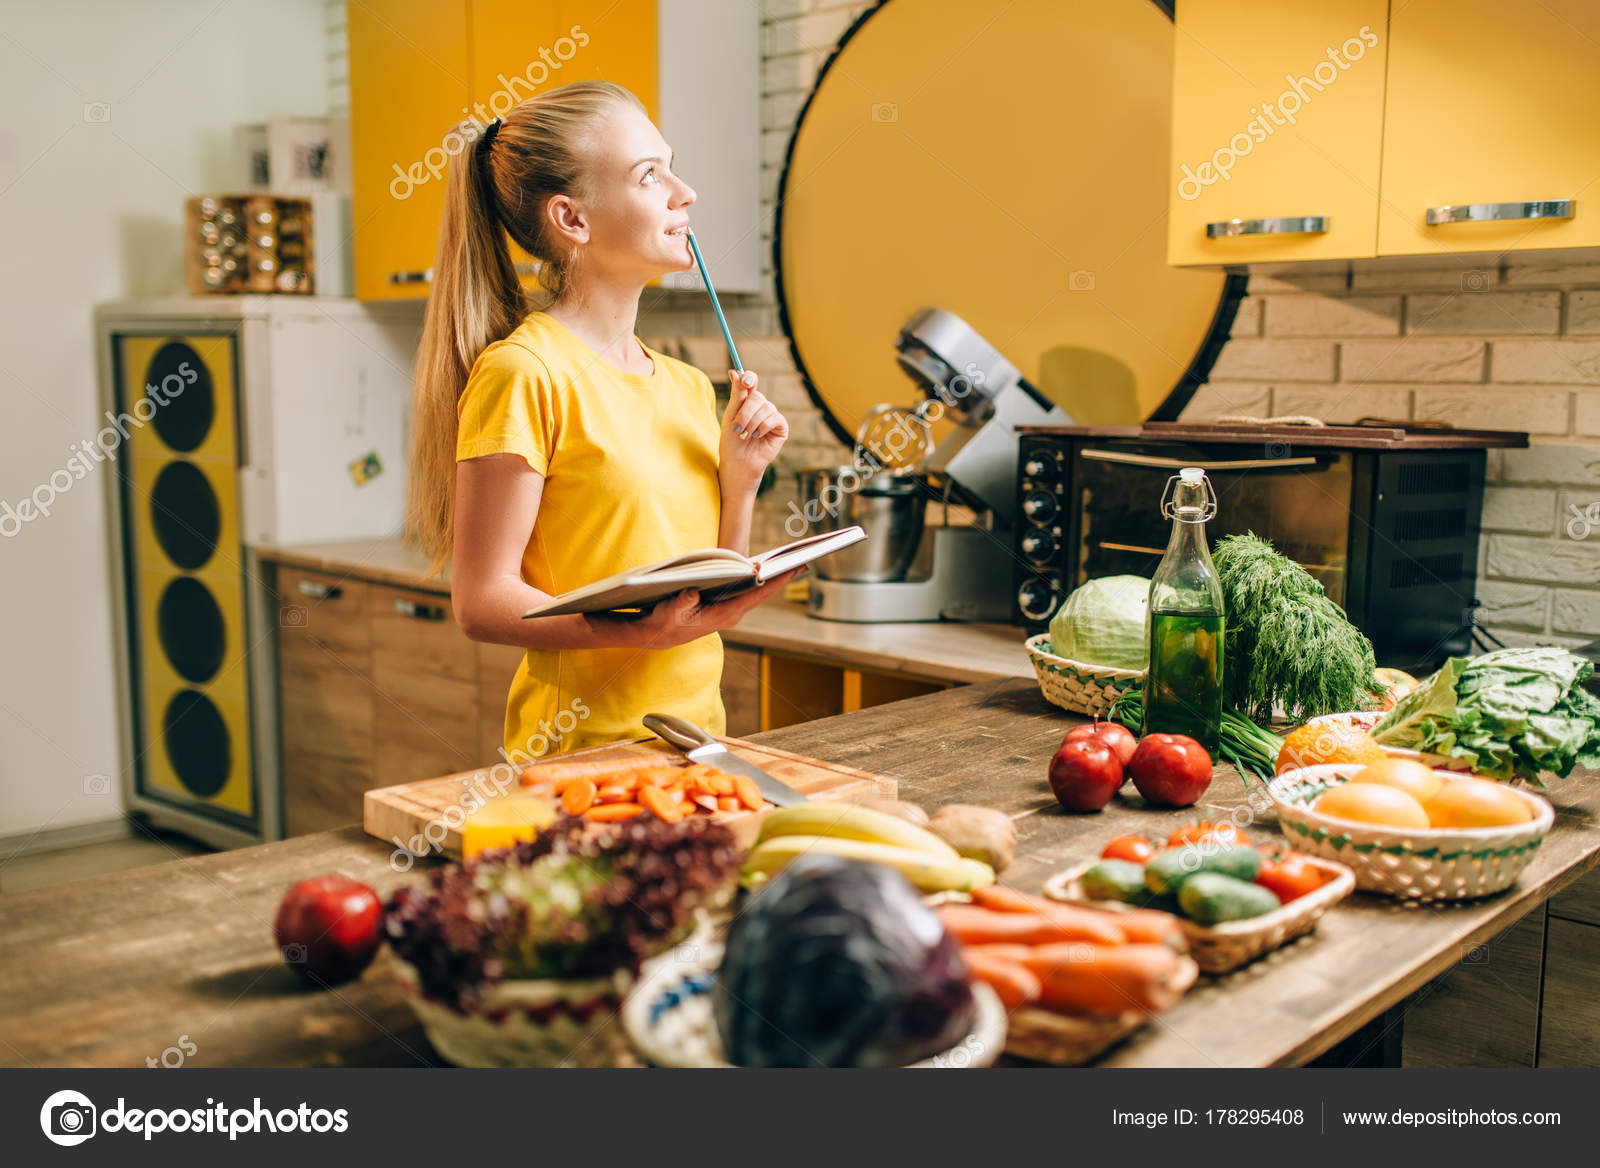 Young happy woman cooking recipe book healthy food vegetarian diet young happy woman cooking recipe book healthy food vegetarian diet stock photo forumfinder Gallery